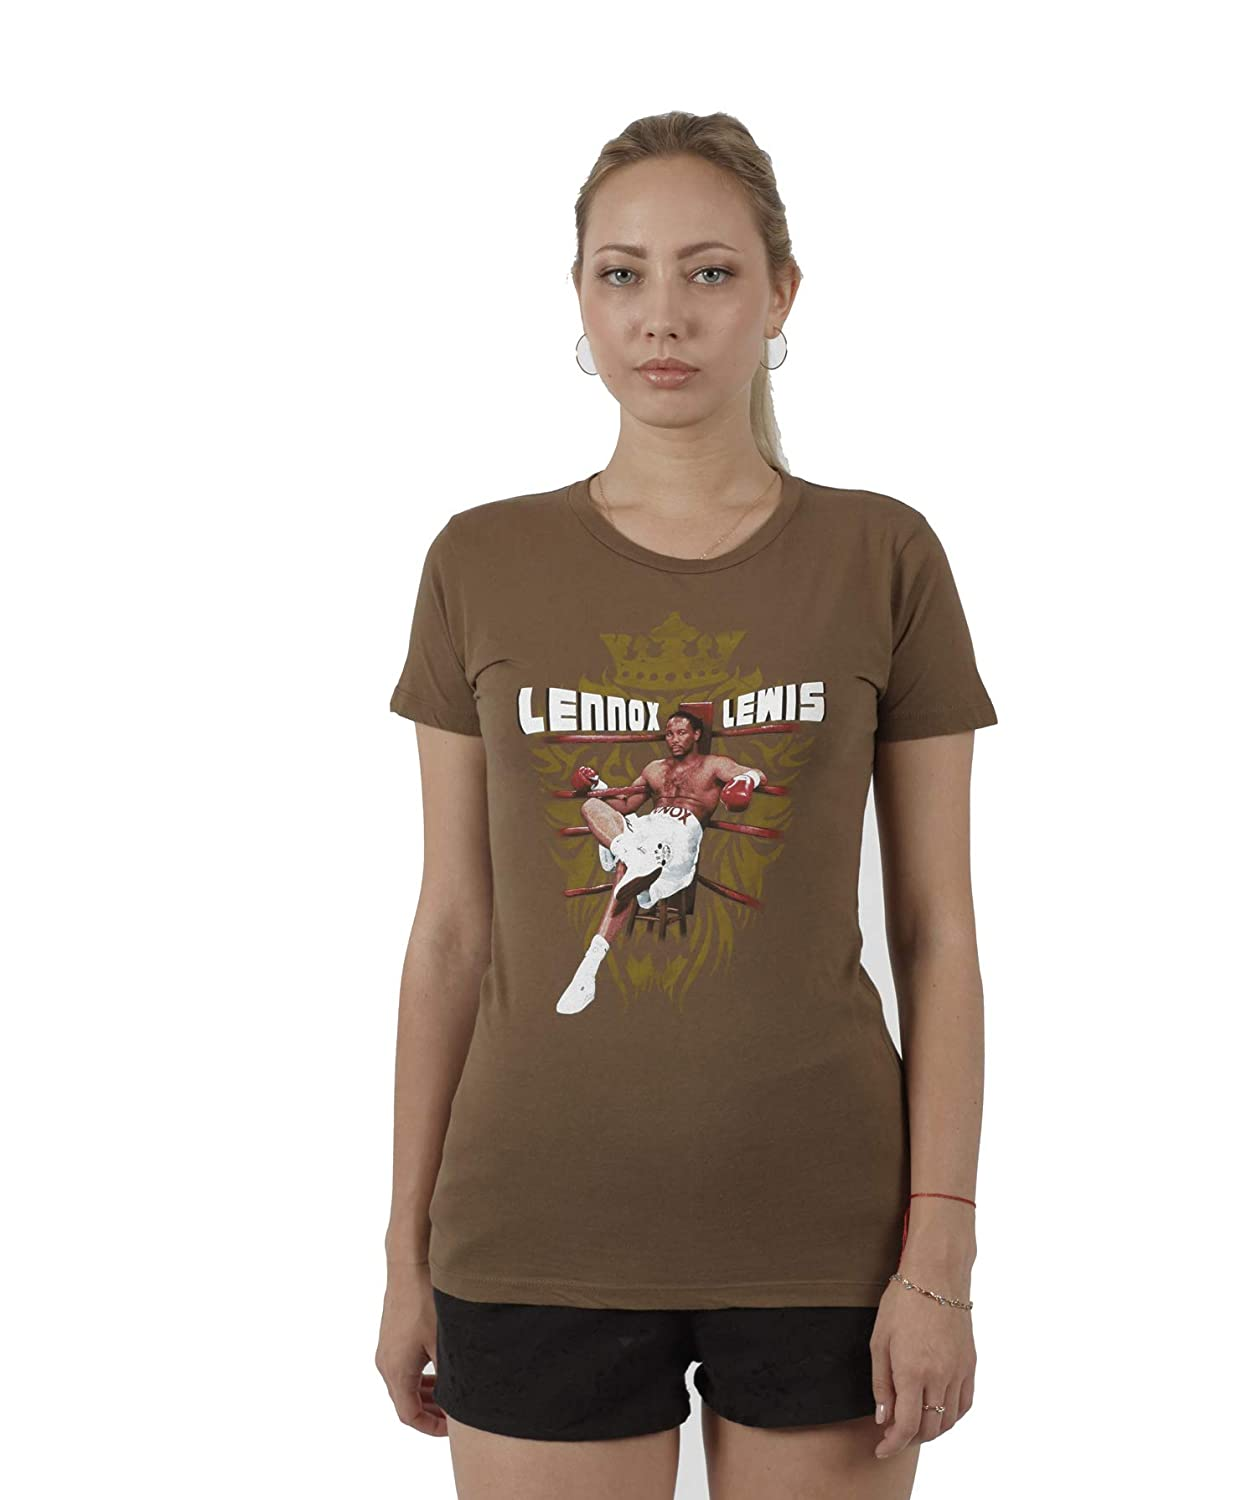 Lennox Lewis Ring in The Ring T-Shirt for Women